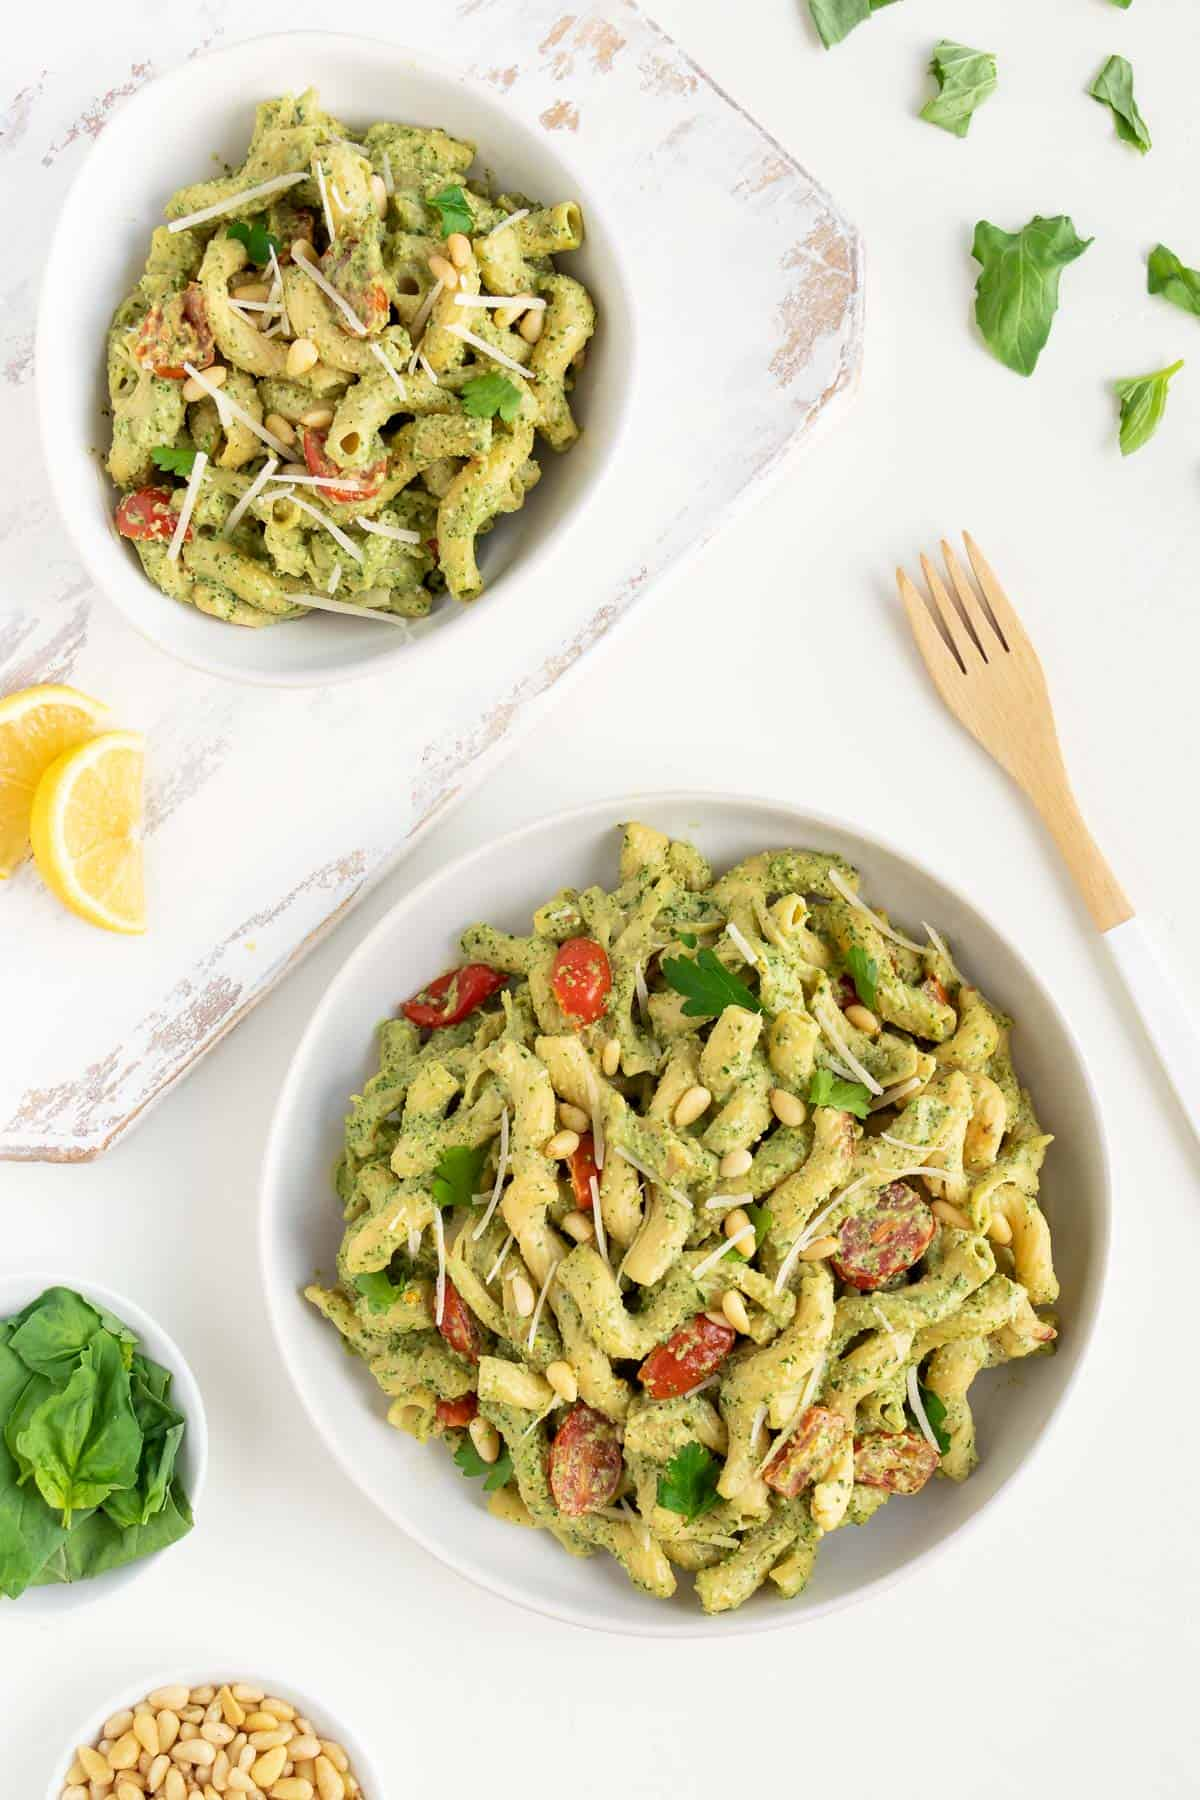 two white bowls filled with vegan pesto cavatappi pasta alongside a small bowl of basil leaves, lemons, a wooden fork, and pine nuts